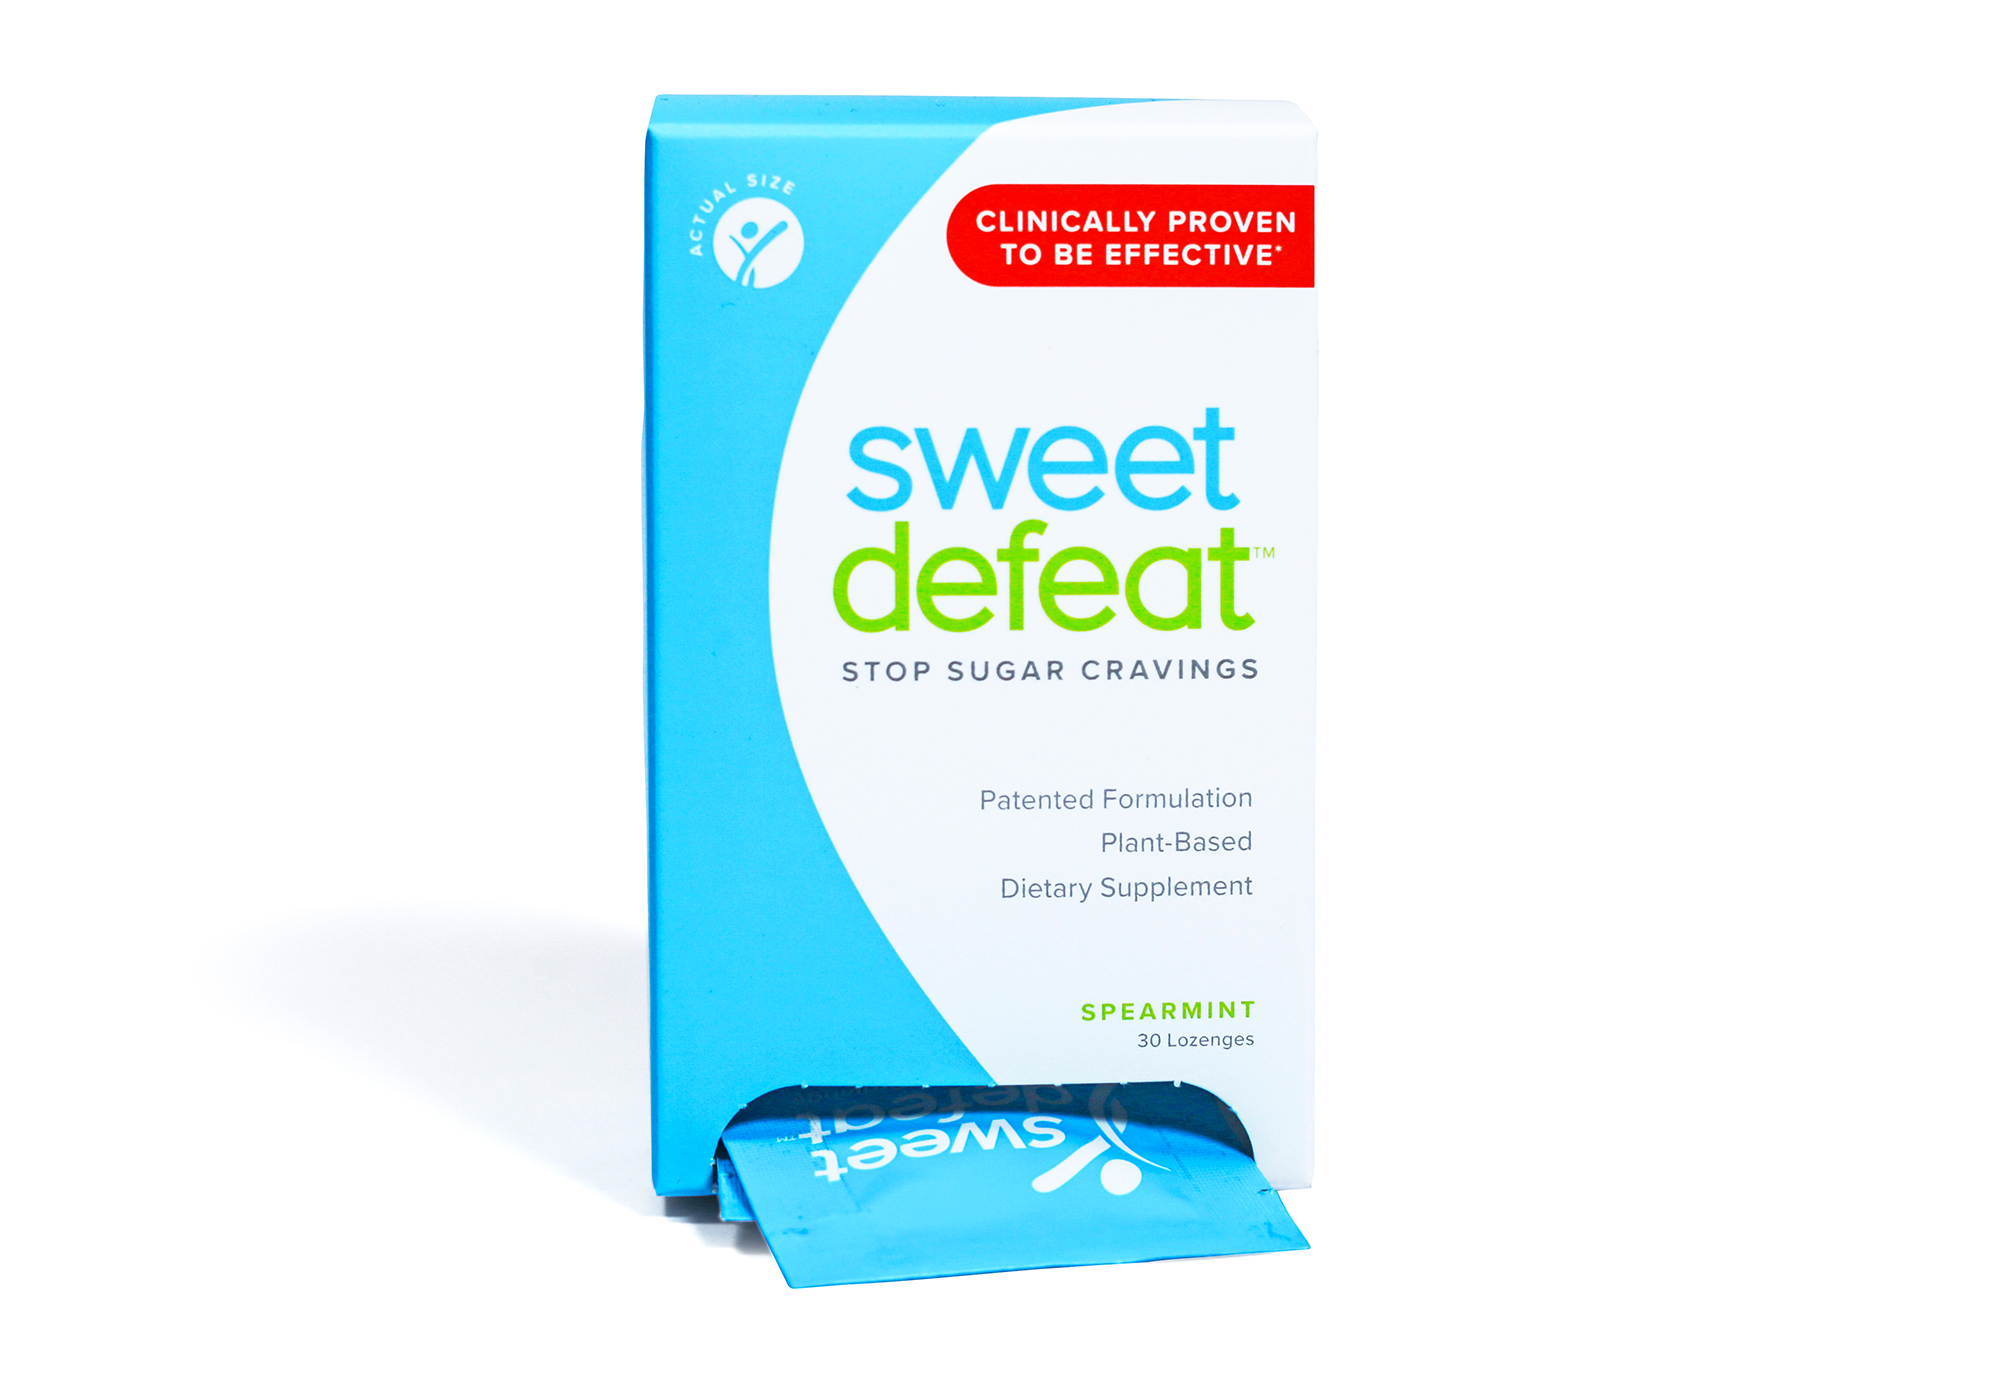 sweet-defeat - Beat the sweet! This all-natural and clinically proven minty lozenge stops sugar cravings within seconds to help you hit a 30-day sugar-reset button.